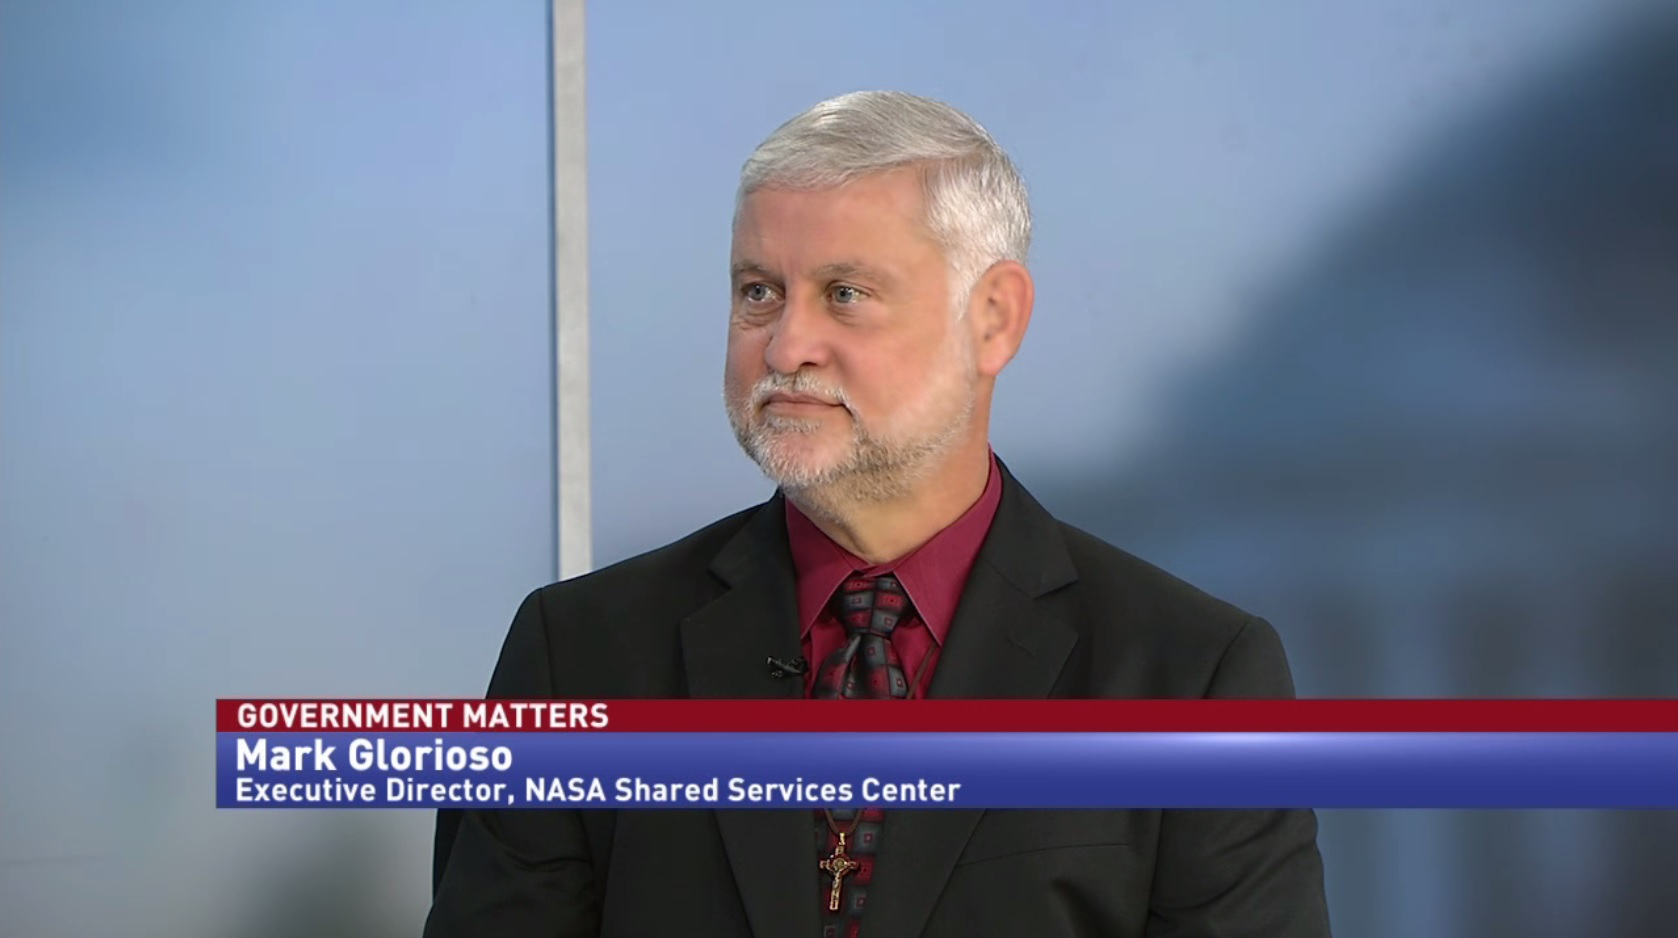 Priorities for NASA's Shared Services Center